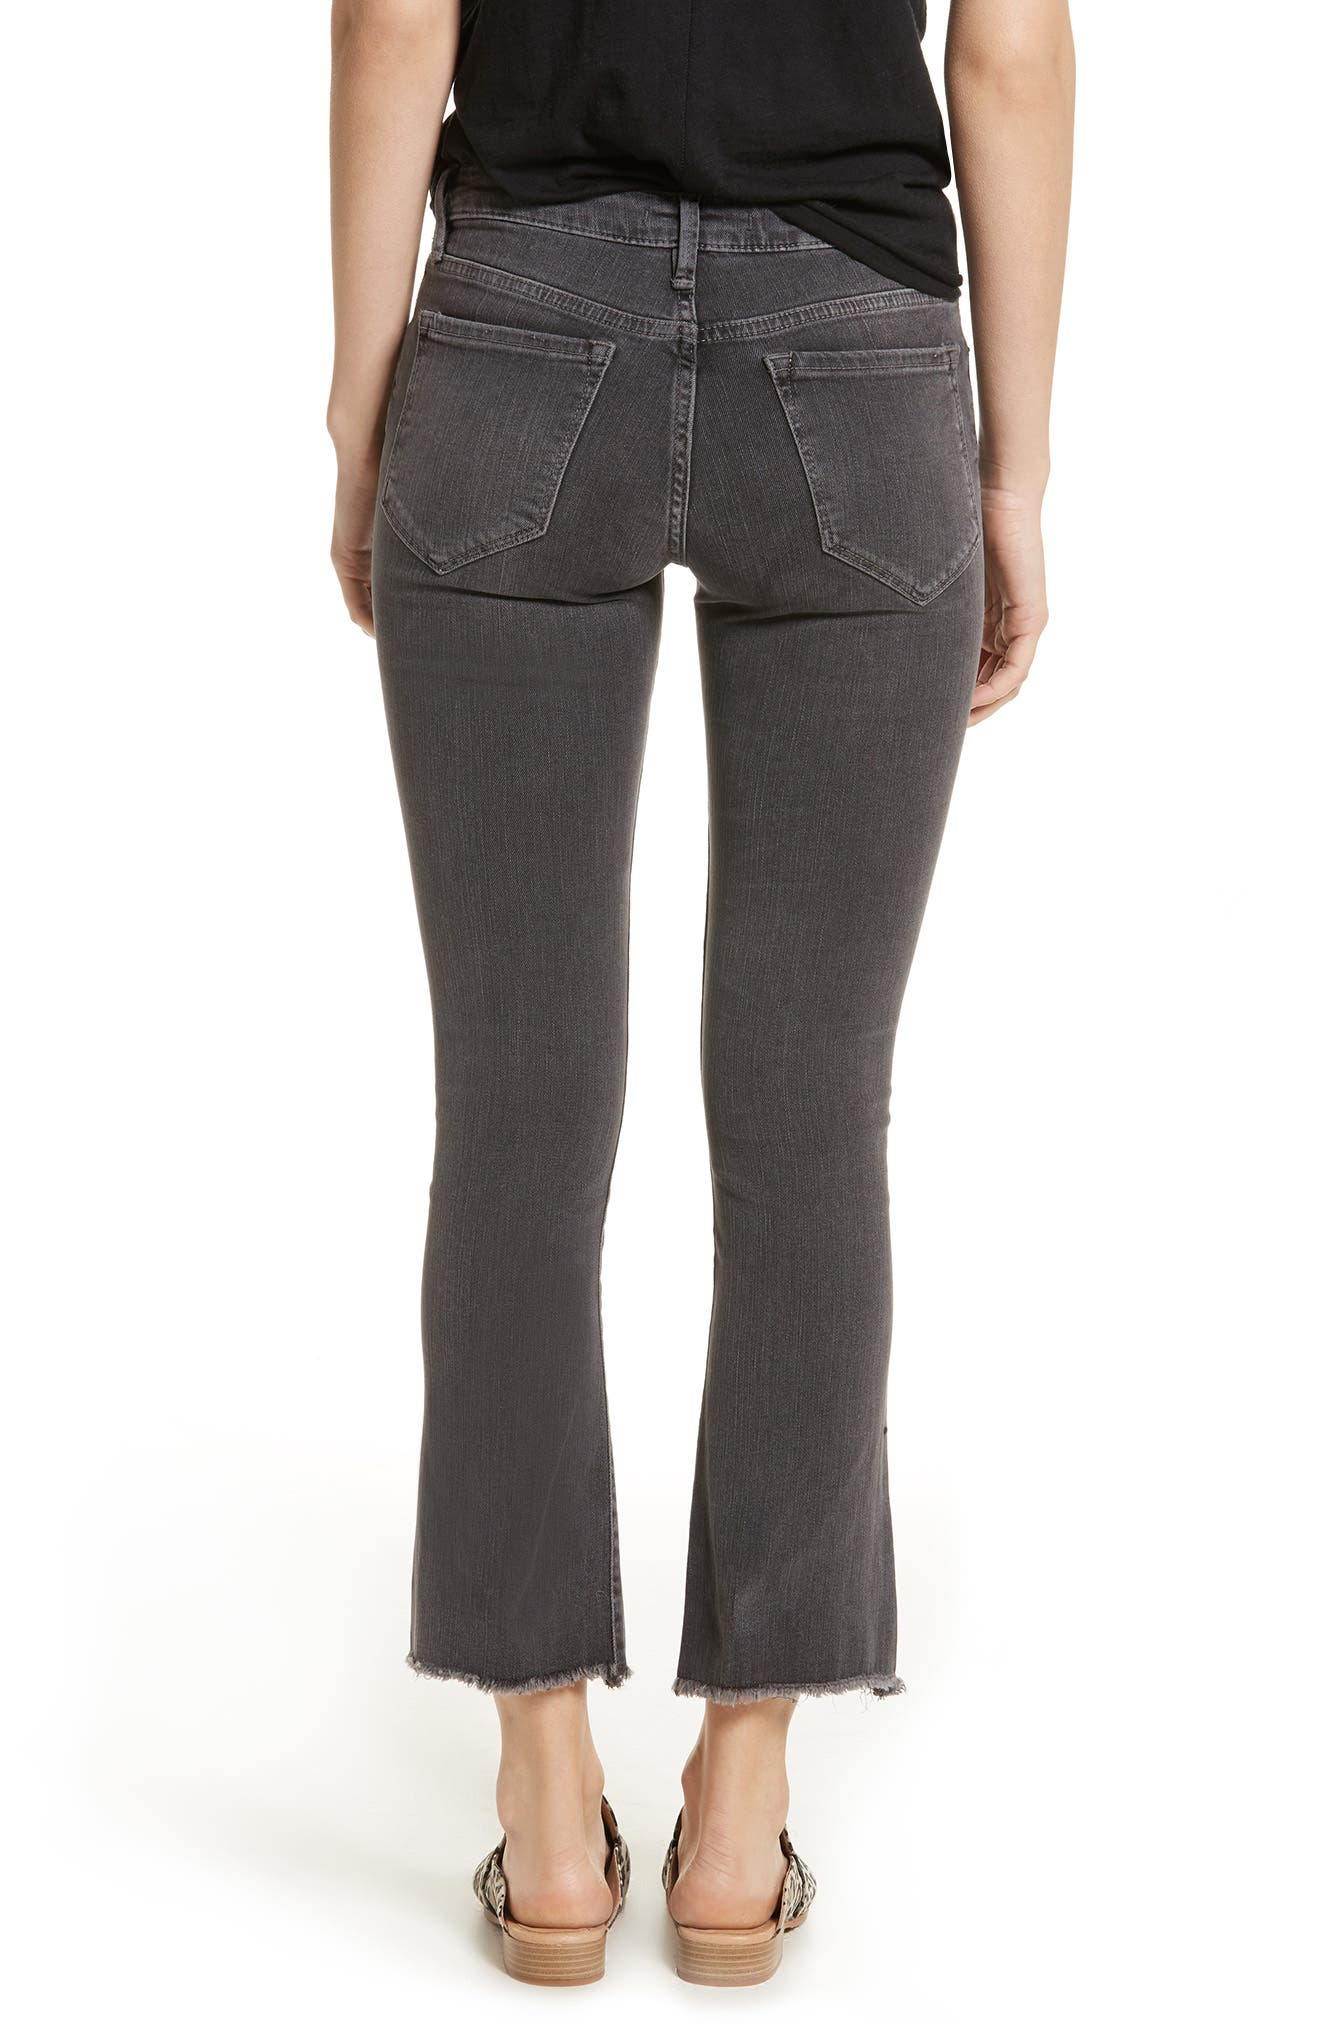 FREE PEOPLE,                             Crop Straight Leg Jeans,                             Alternate thumbnail 2, color,                             001